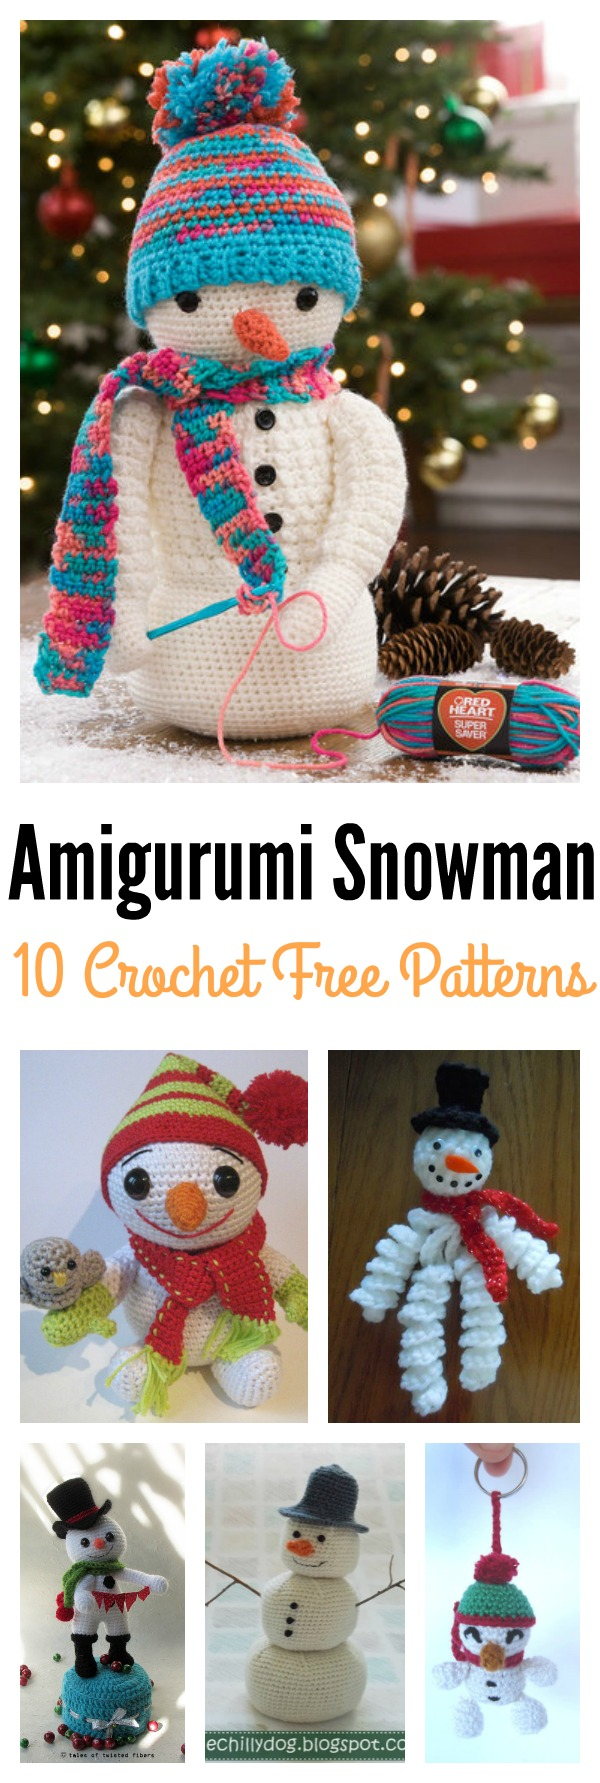 10 Crochet Amigurumi Snowman Free Patterns